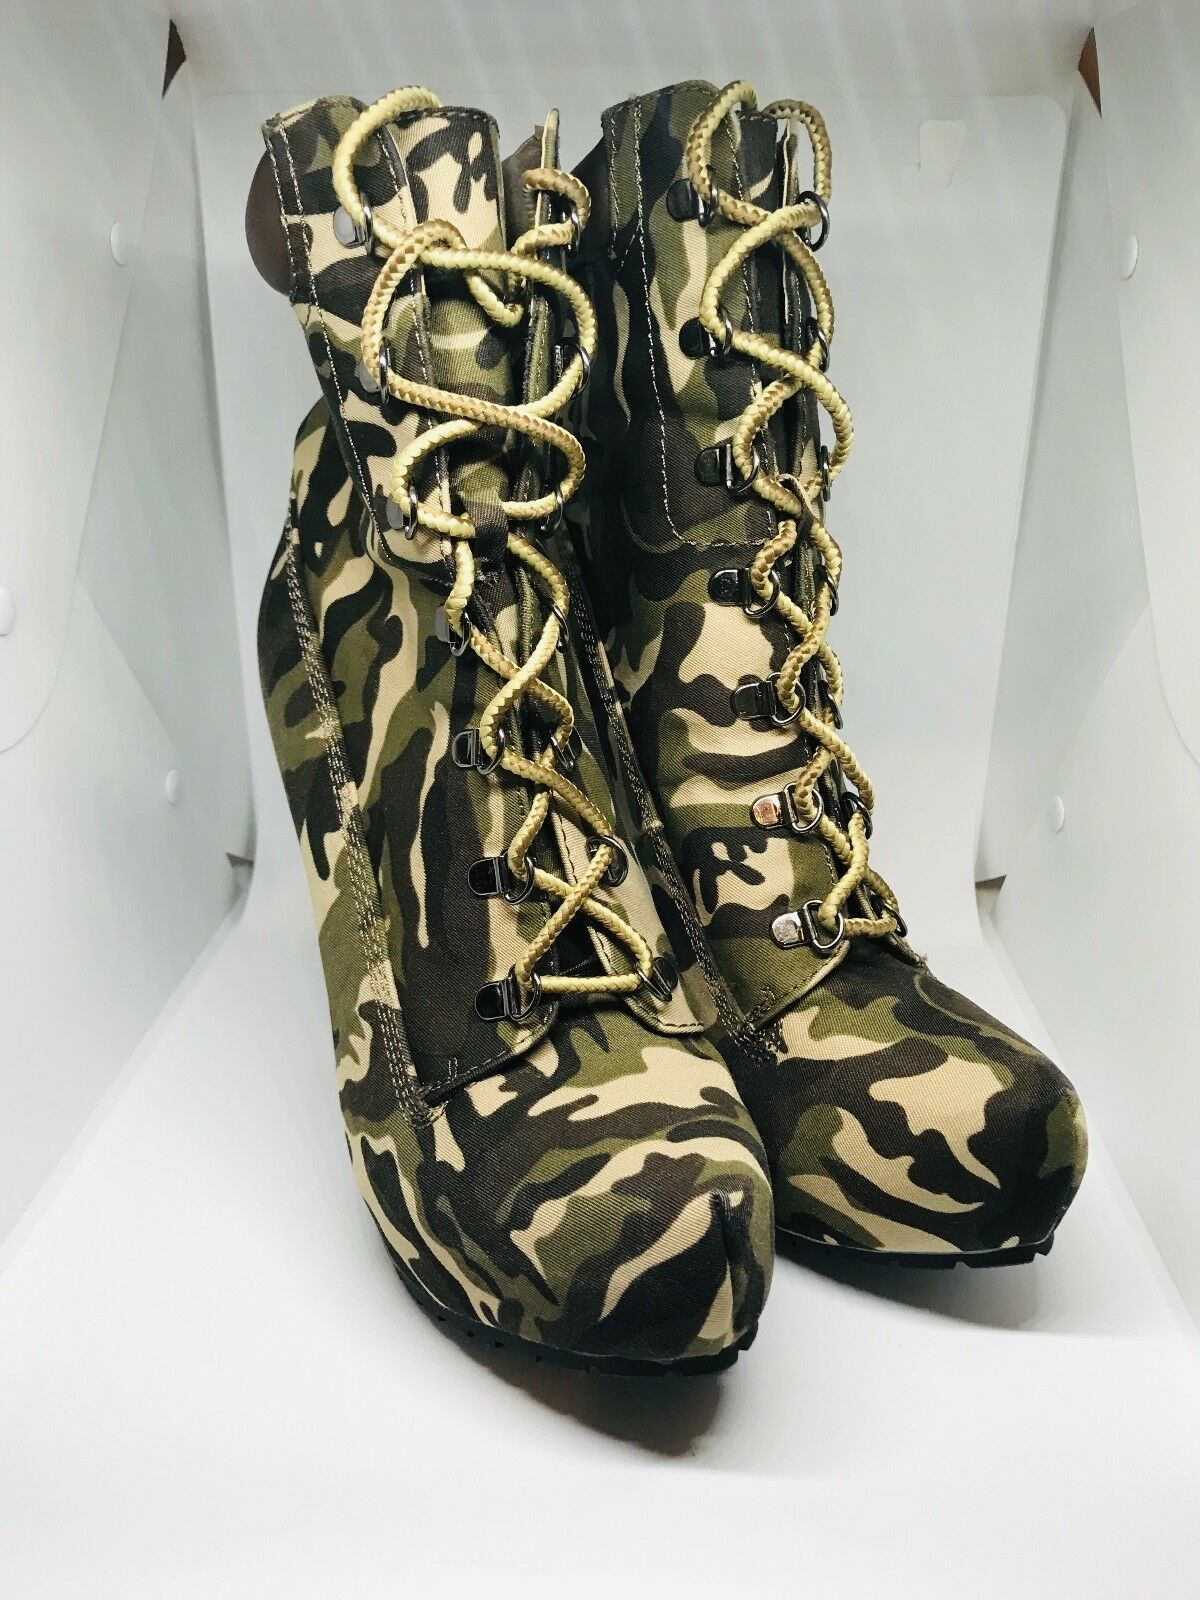 Brand-New JustFab Camouflage Booties, size 9 US